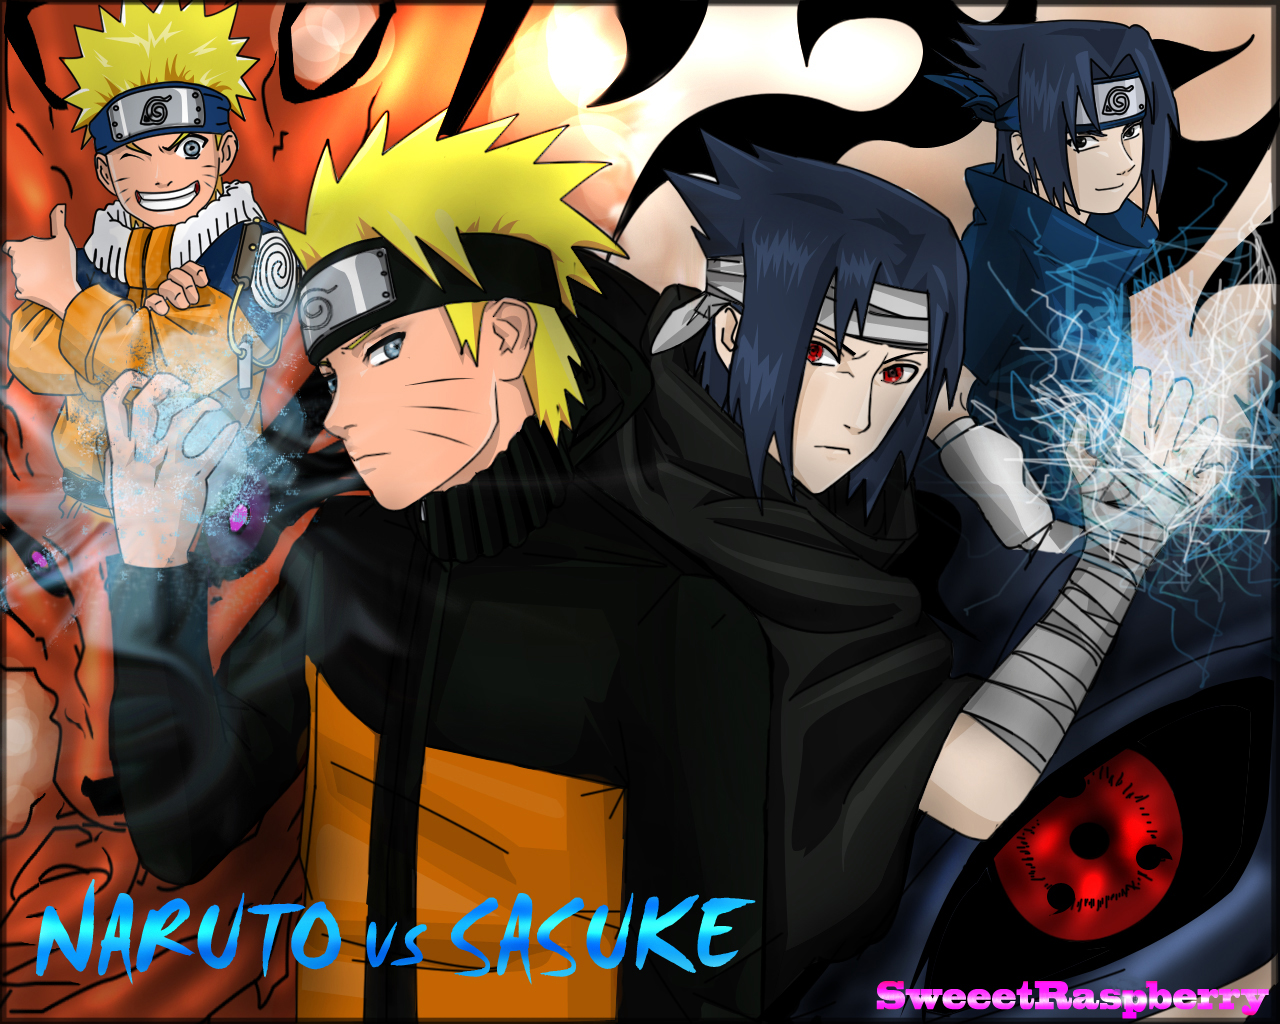 Wallpaper 3d Naruto Wallpapersku Naruto Vs Sasuke Wallpapers